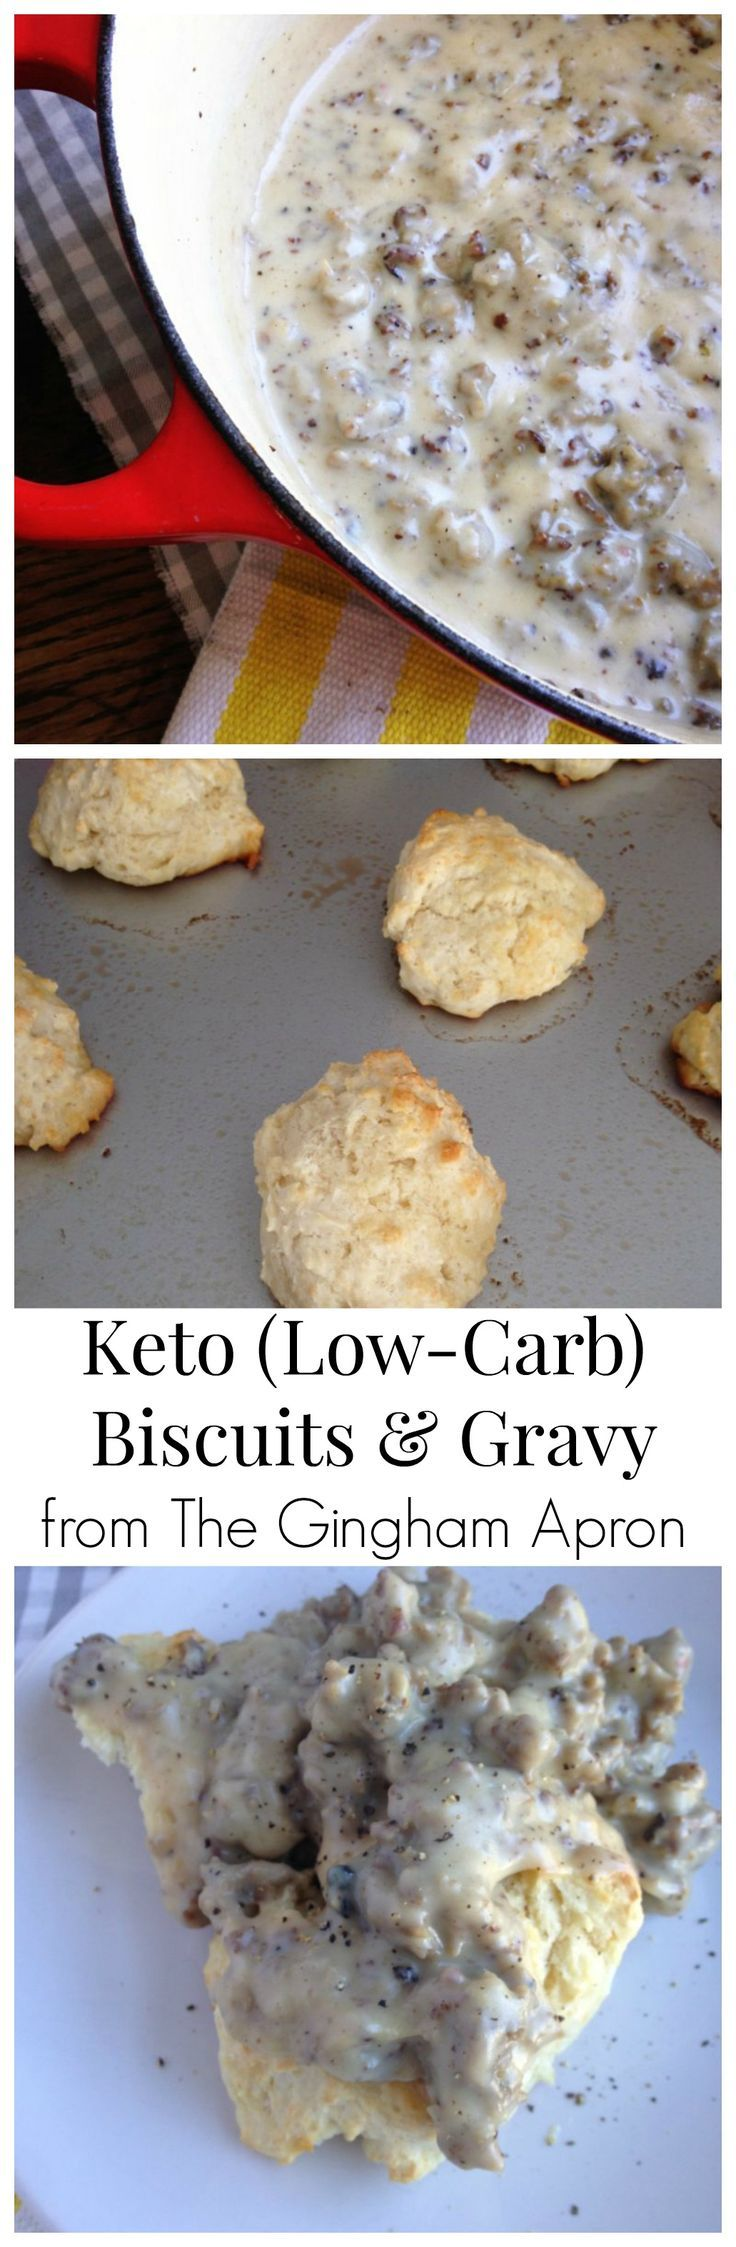 Low Carb Keto Biscuits And Gravy Recipe Low Carb Biscuit Biscuits Gravy Food Recipes